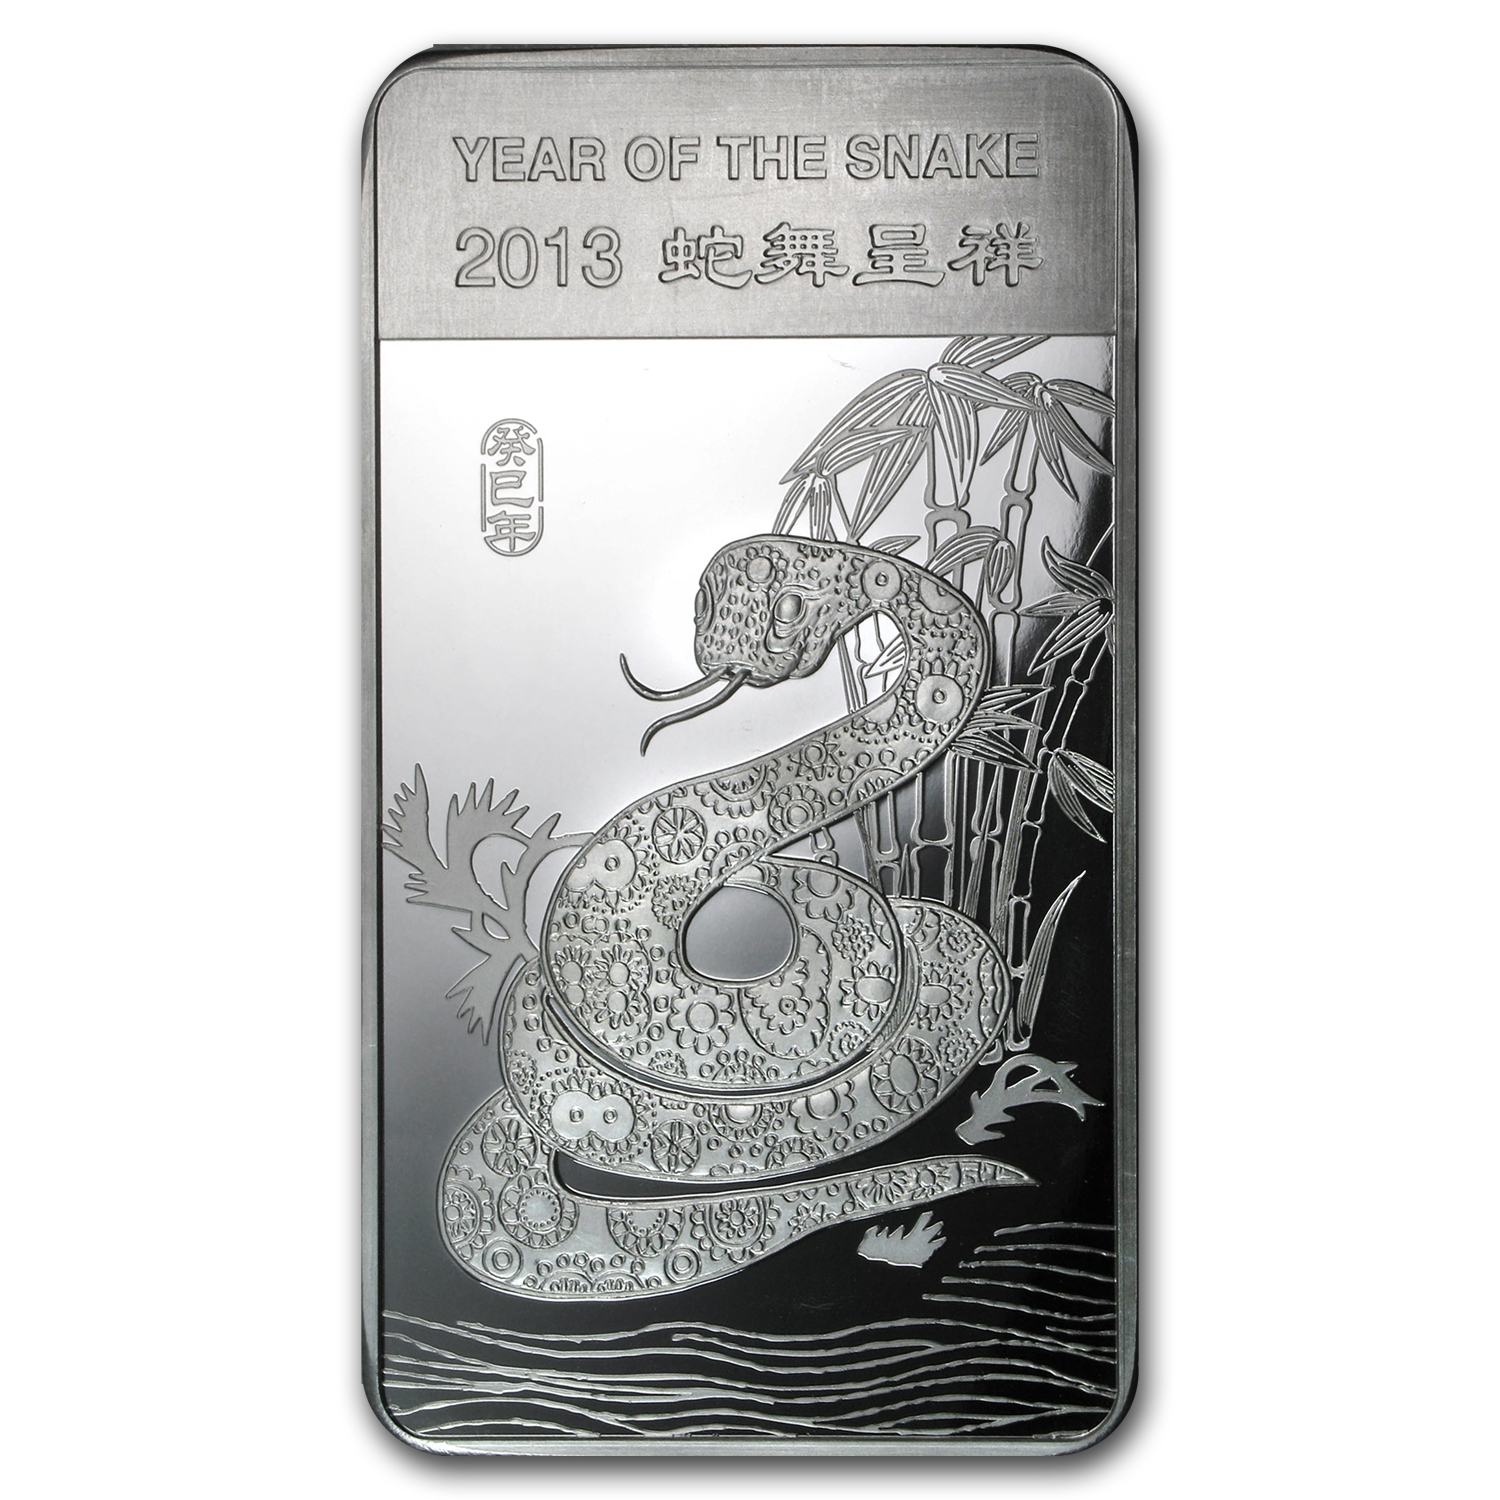 10 oz APMEX Silver Bar (Year of the Snake)